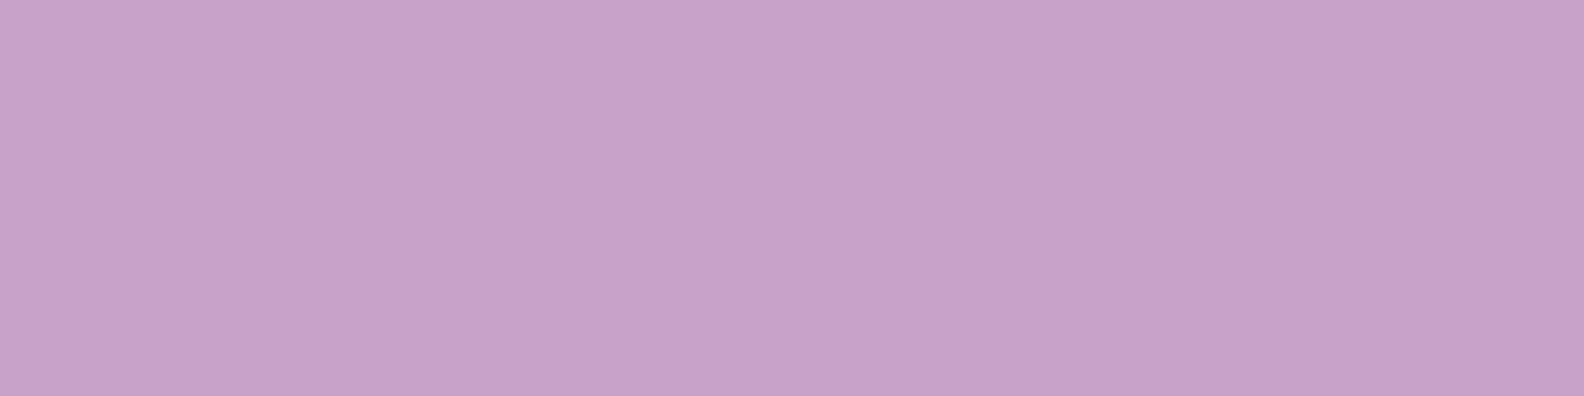 1584x396 Lilac Solid Color Background